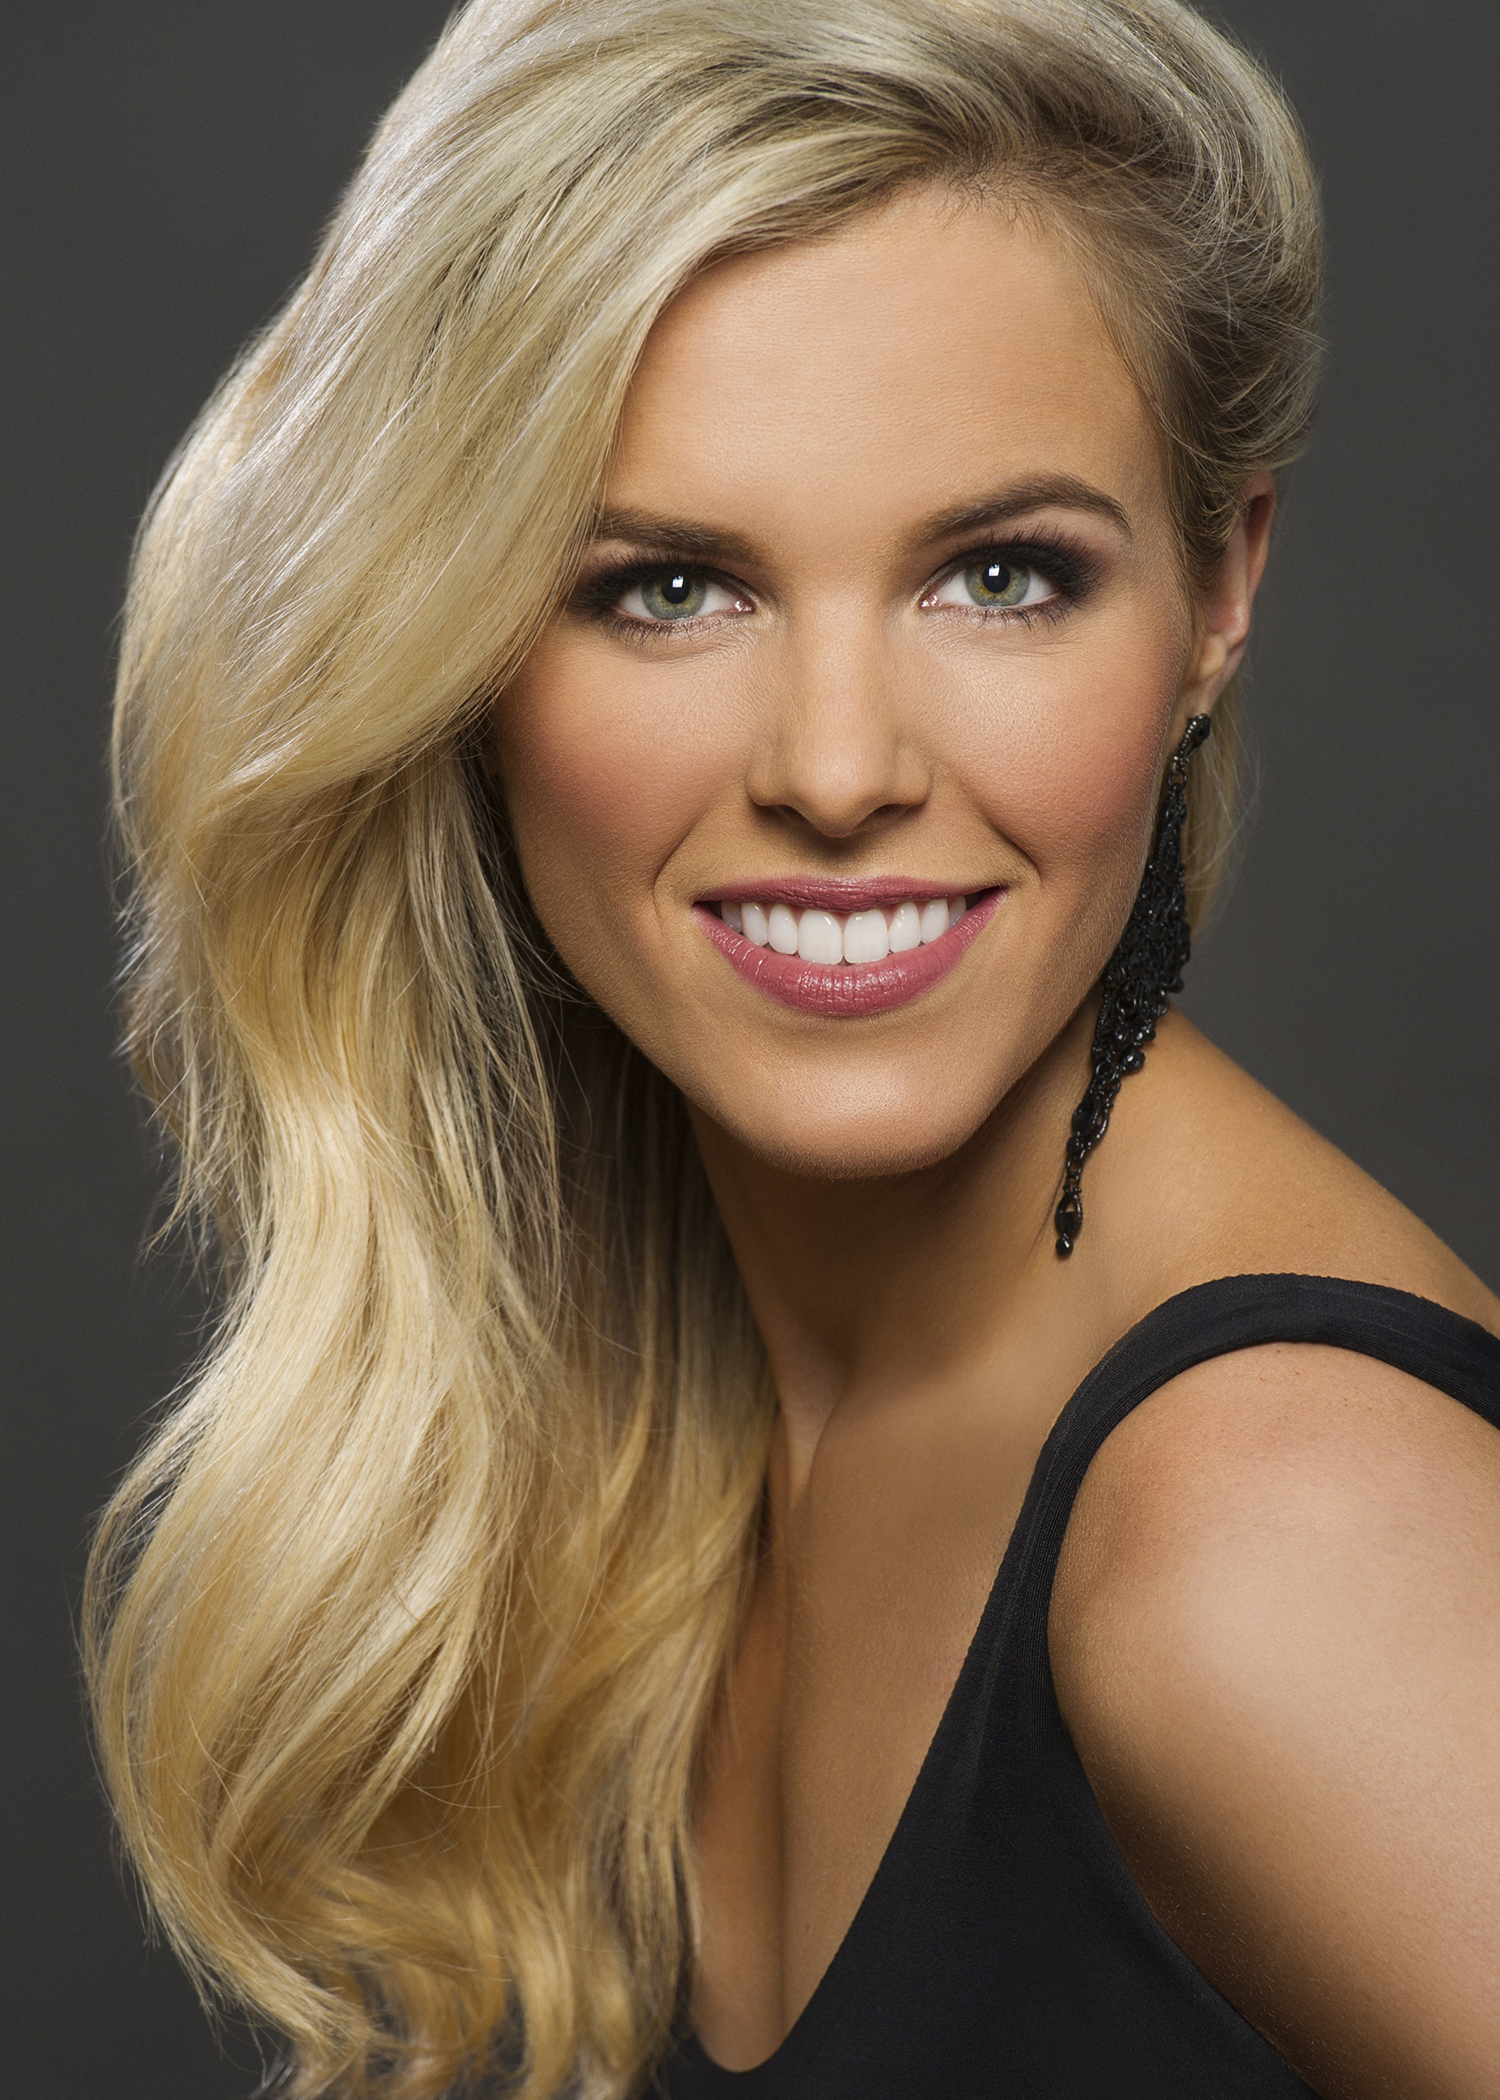 Miss Michigan 2017 - Heather Heather